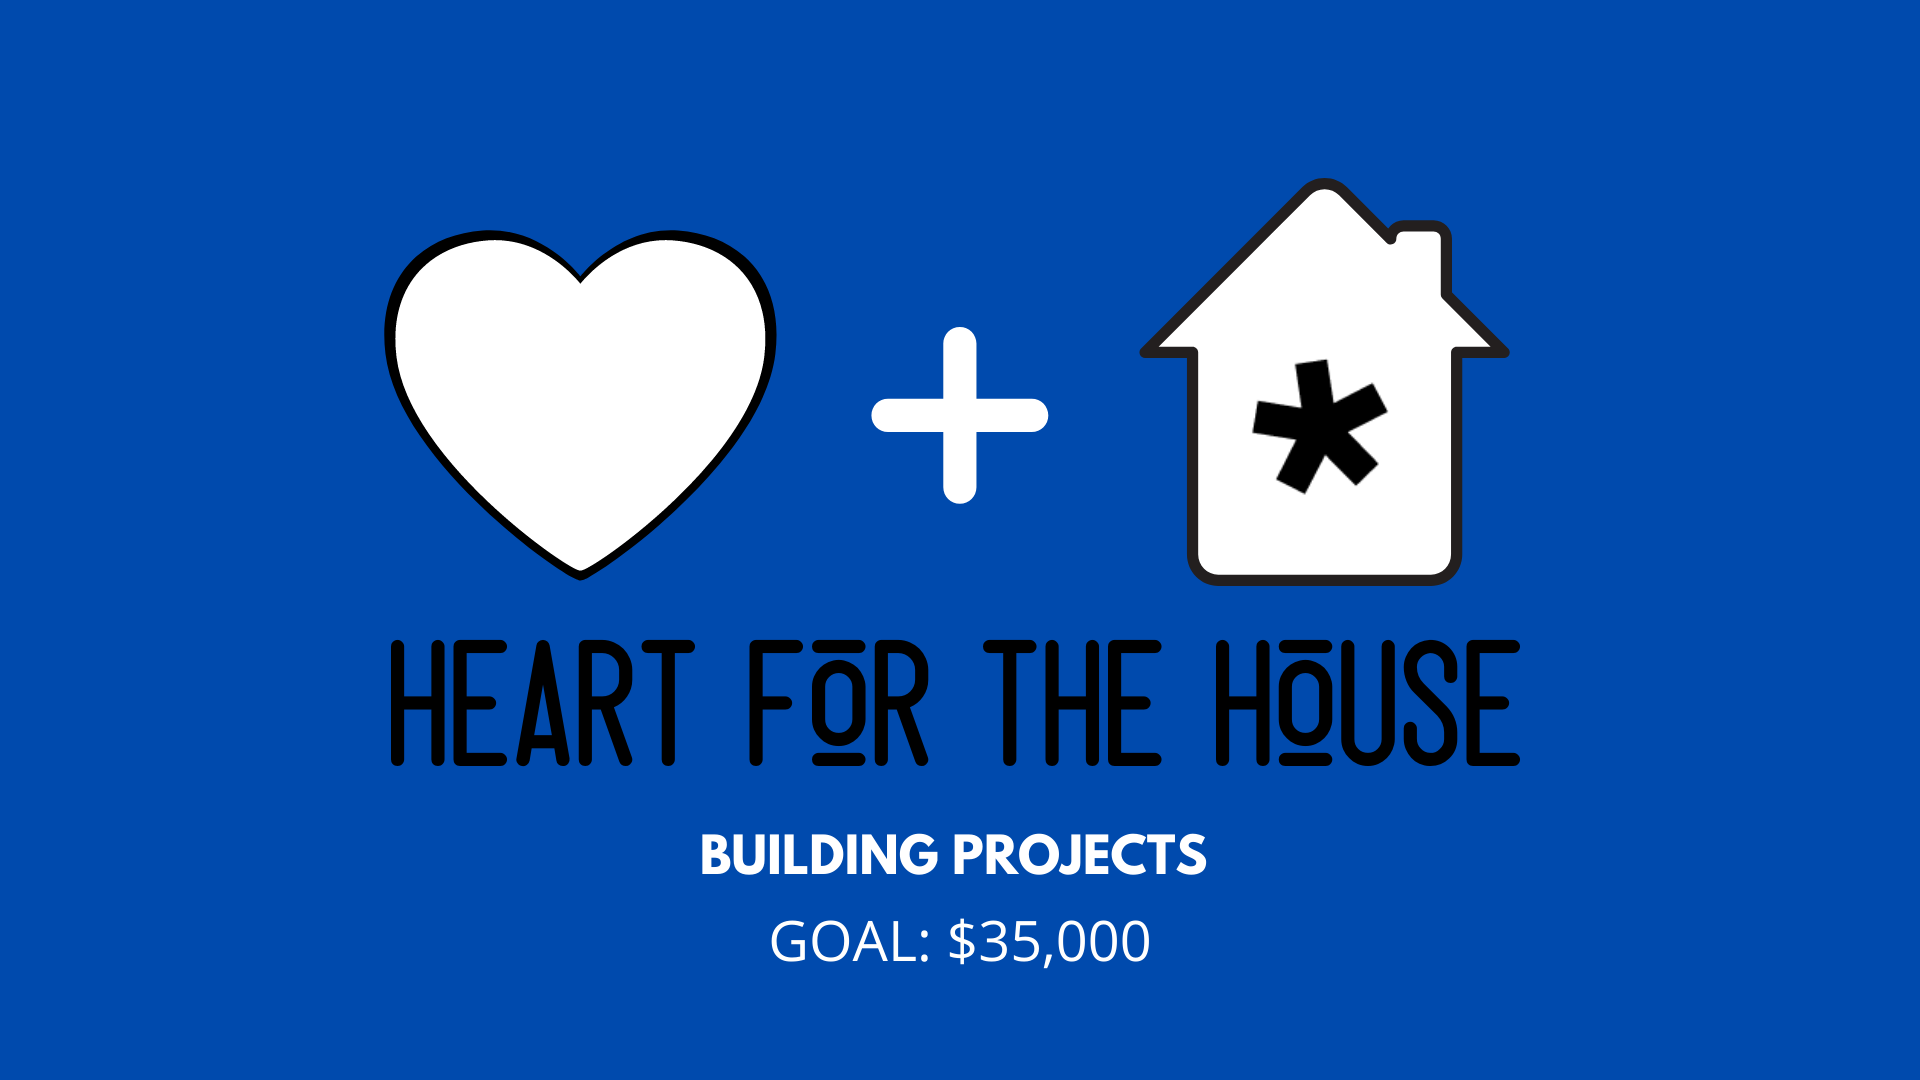 Heart for the House: Building Projects